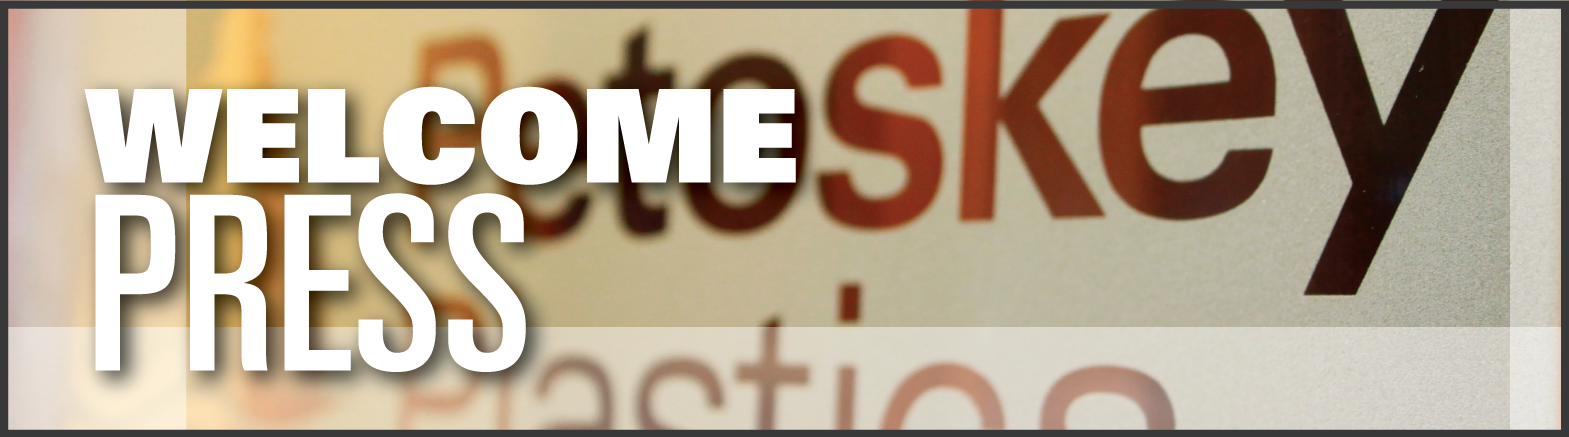 Welcome press Banner